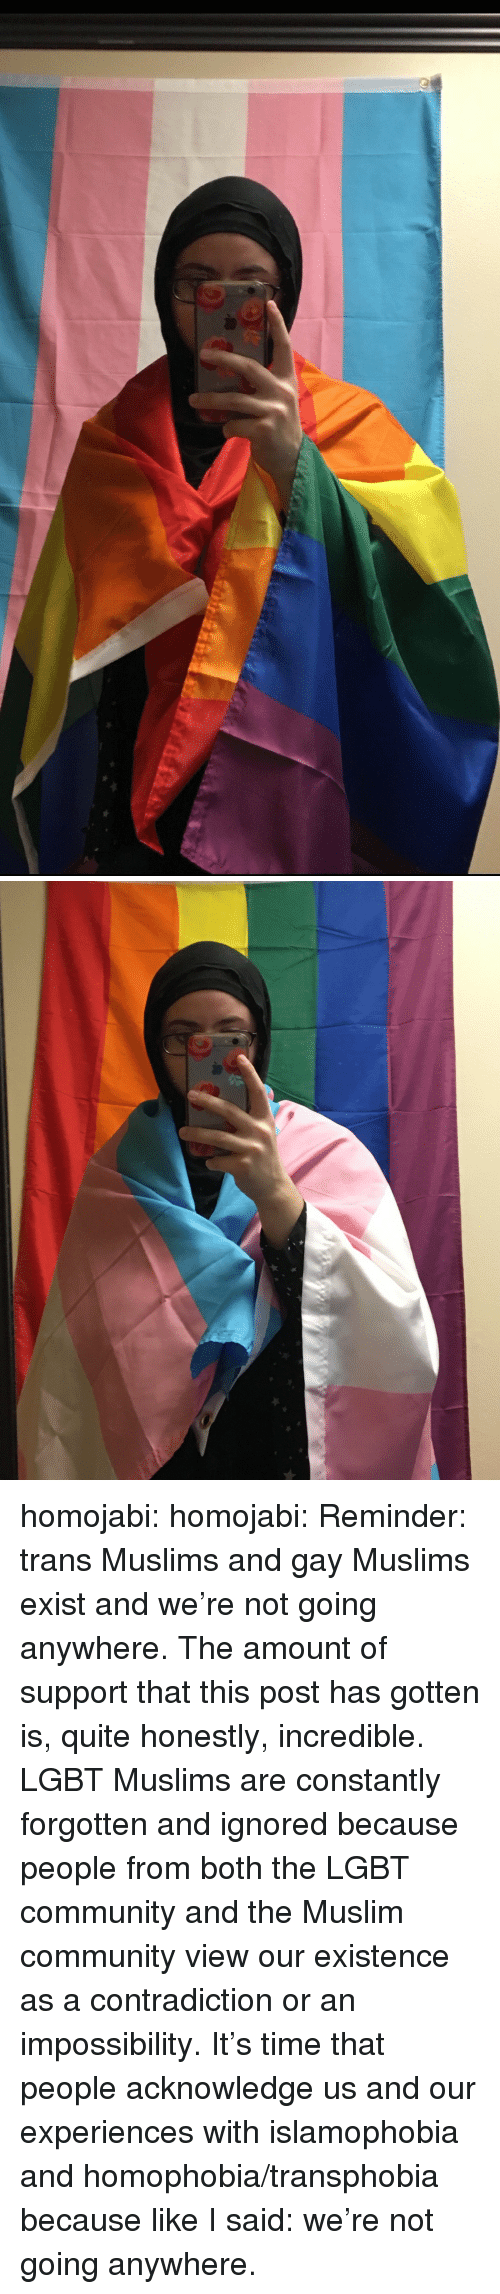 Impossibility: homojabi: homojabi: Reminder: trans Muslims and gay Muslims exist and we're not going anywhere. The amount of support that this post has gotten is, quite honestly, incredible. LGBT Muslims are constantly forgotten and ignored because people from both the LGBT community and the Muslim community view our existence as a contradiction or an impossibility. It's time that people acknowledge us and our experiences with islamophobia and homophobia/transphobia because like I said: we're not going anywhere.